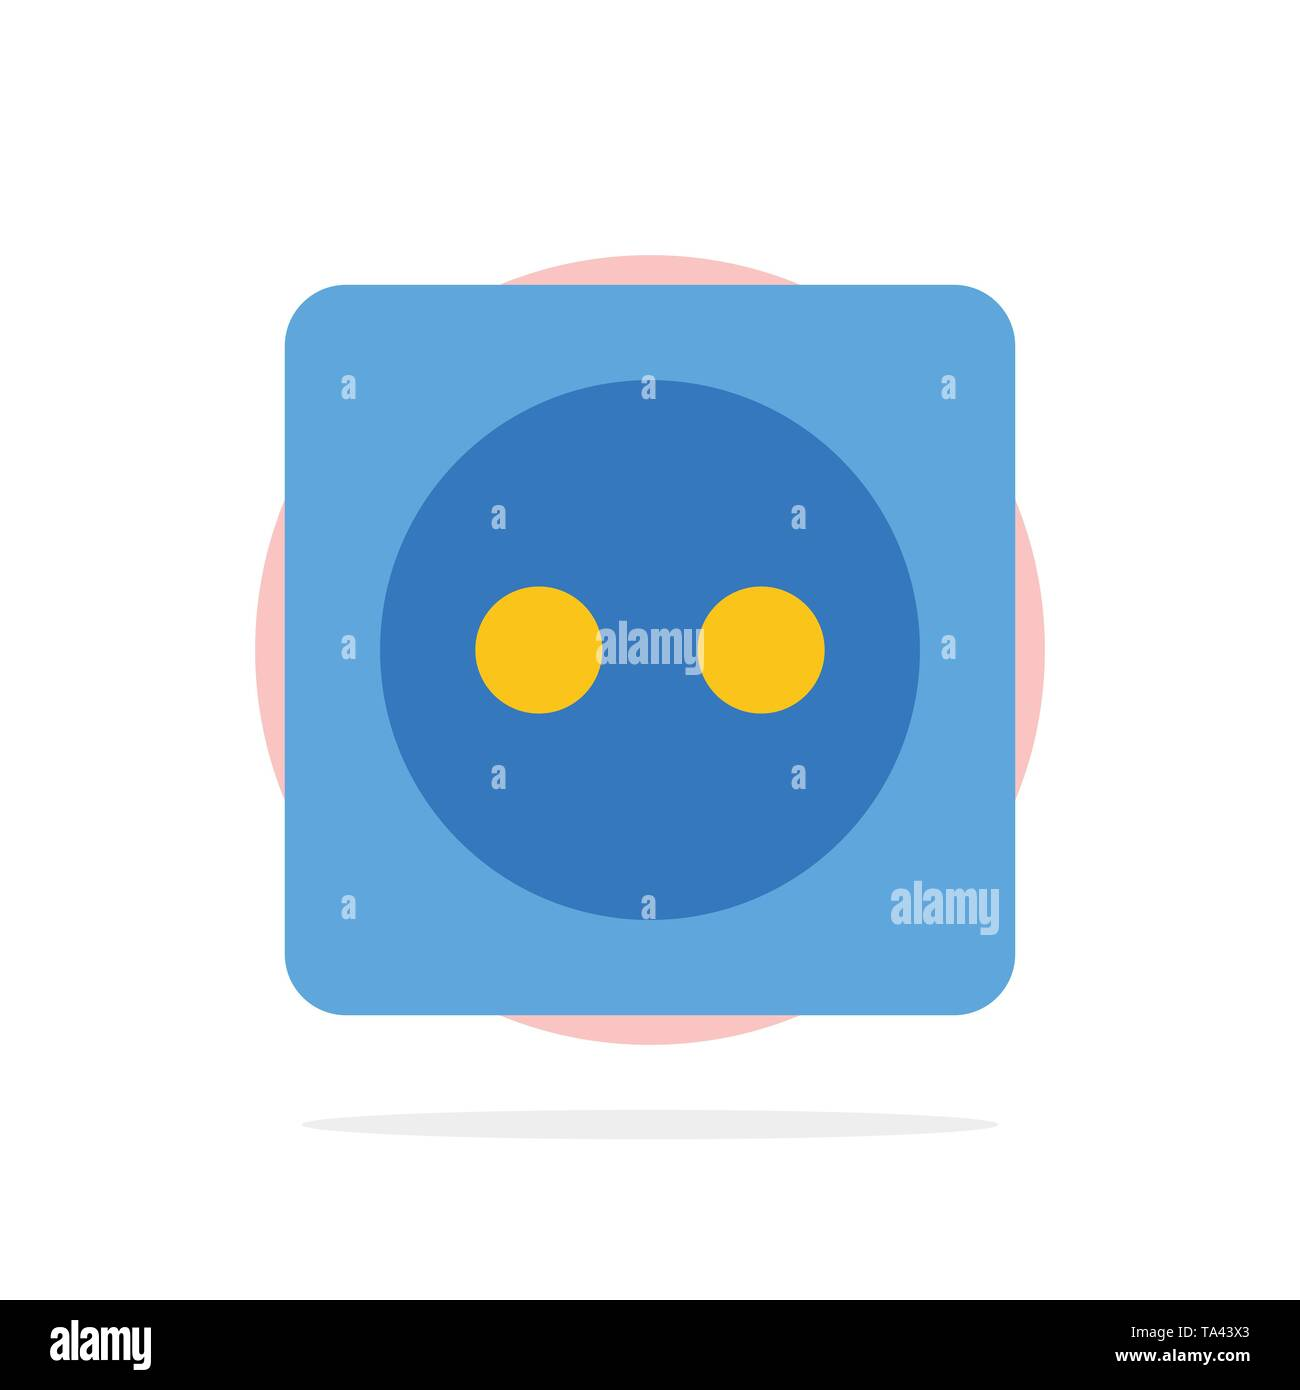 Plug Board, Eco, Energy, Power Abstract Circle Background Flat color Icon - Stock Image